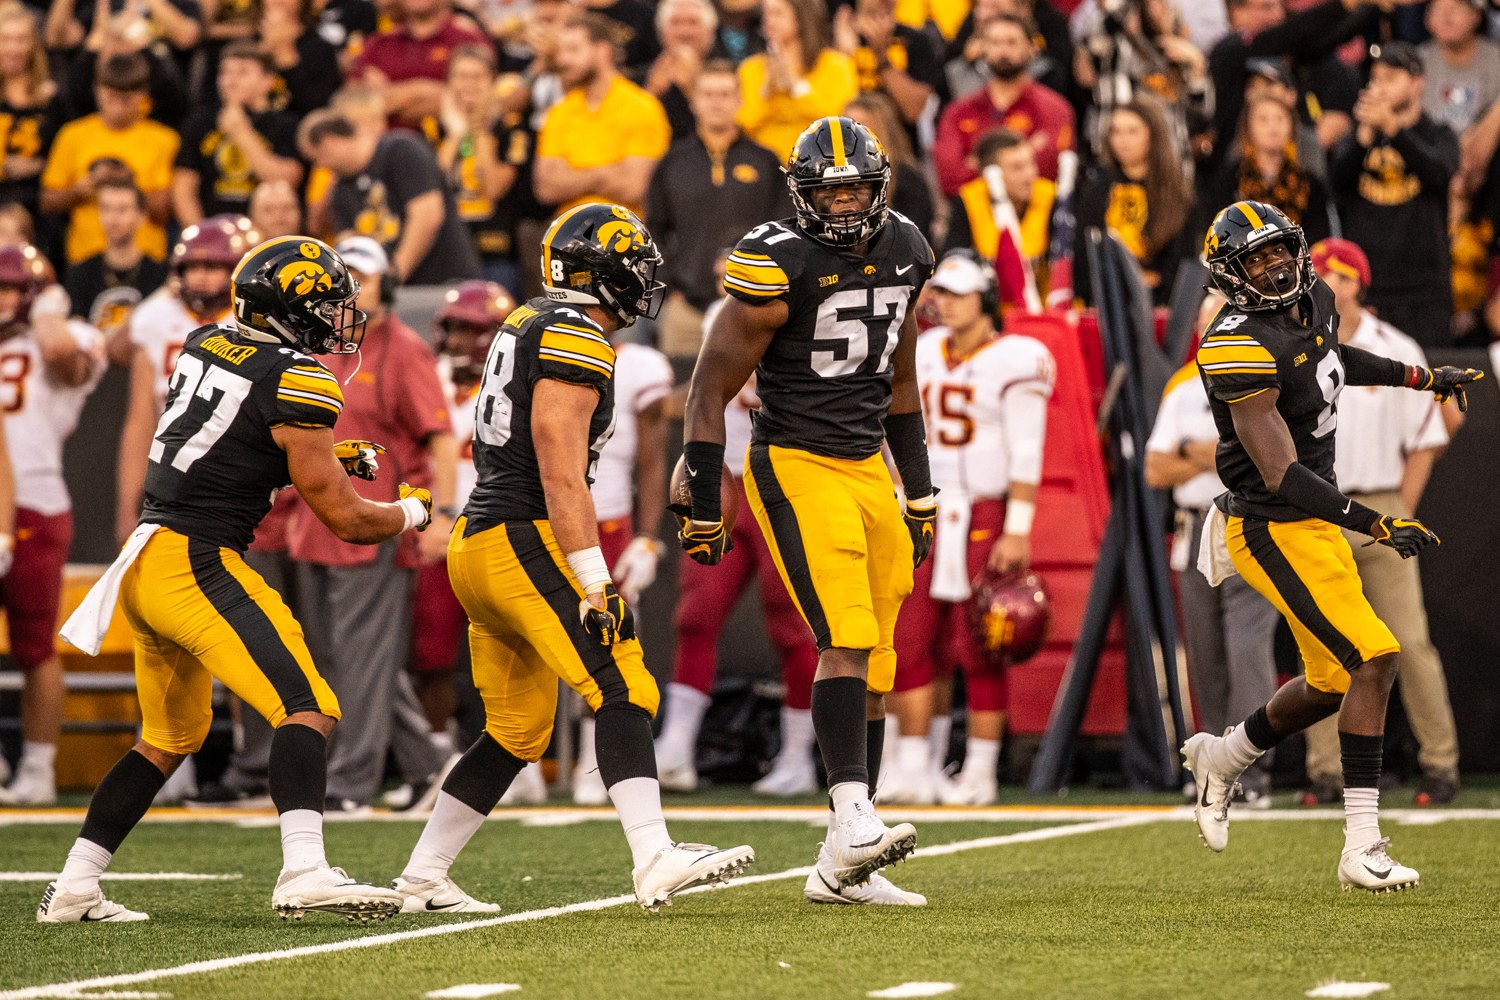 Iowa defensive players celebrate a stop during Iowa's game against Iowa State at Kinnick Stadium on Saturday, September 8, 2018. The Hawkeyes defeated the Cyclones 13-3.